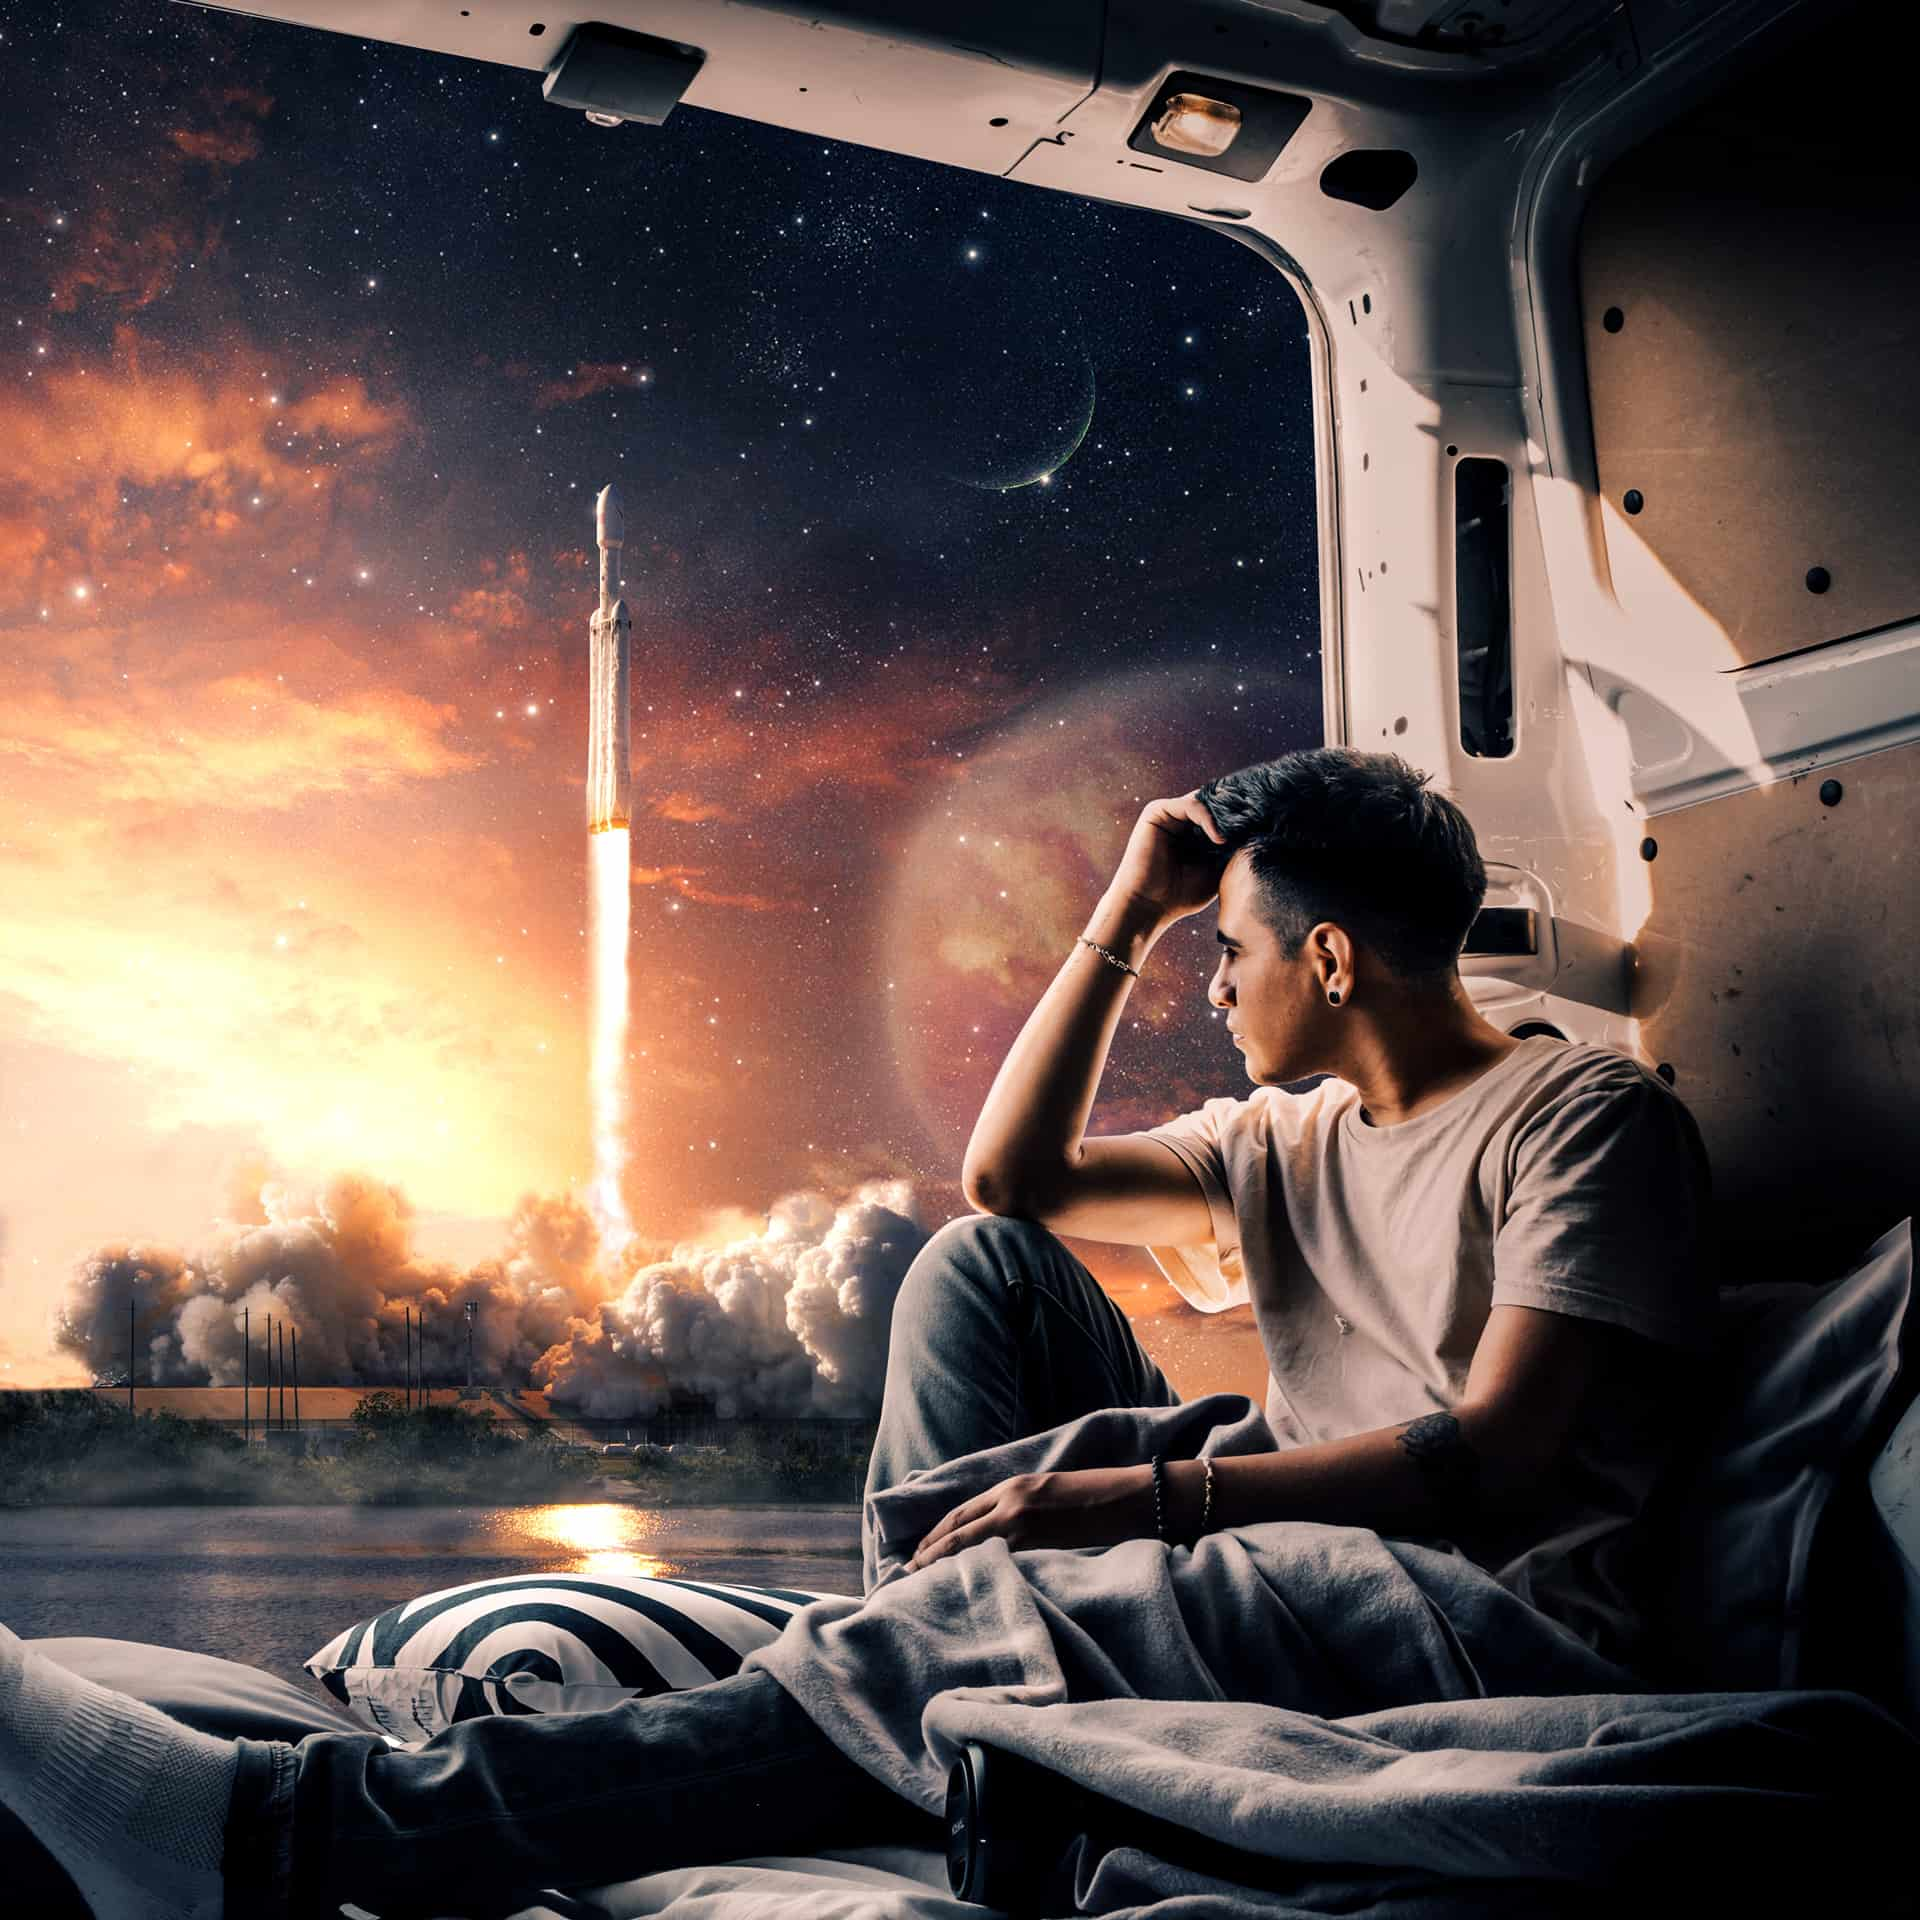 How to Create a Realistic scene of Rocket Launch in Photoshop